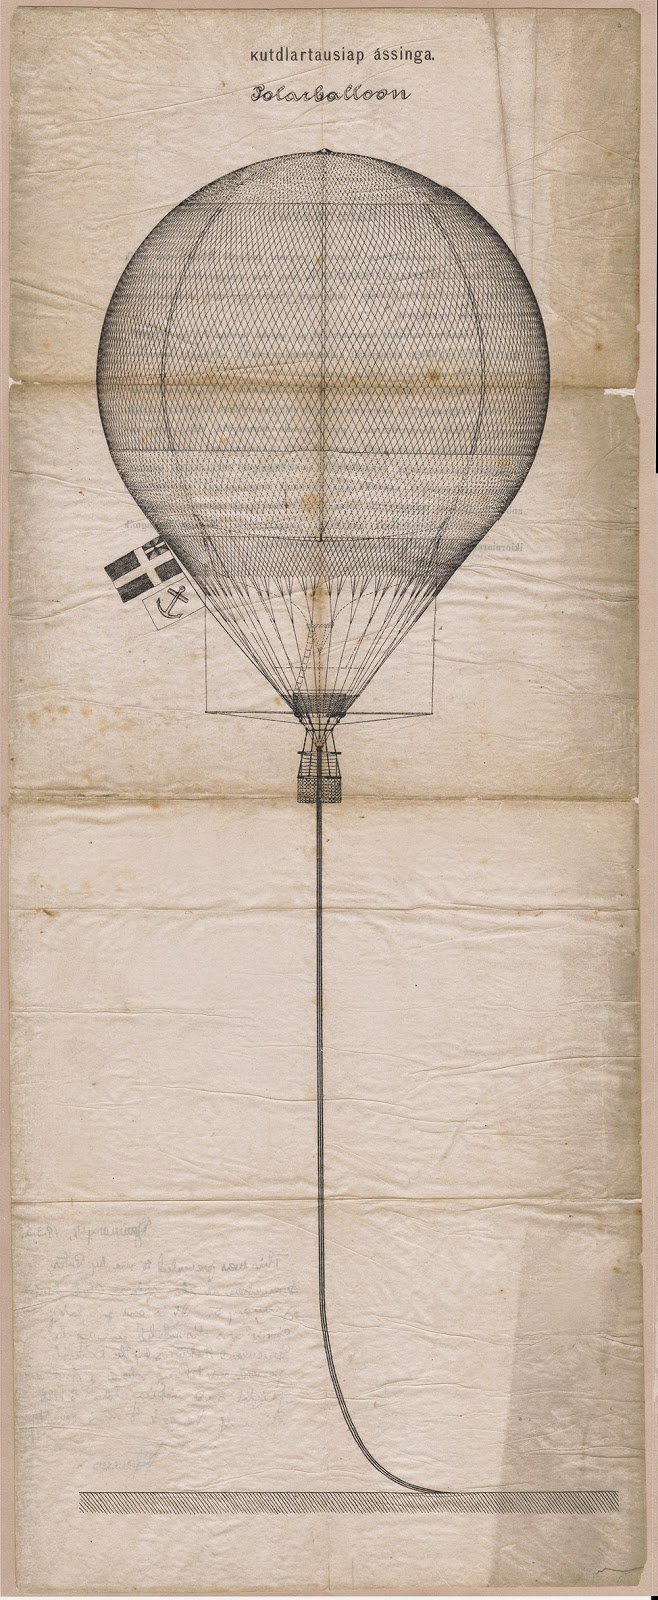 A diagram of a hot air balloon.